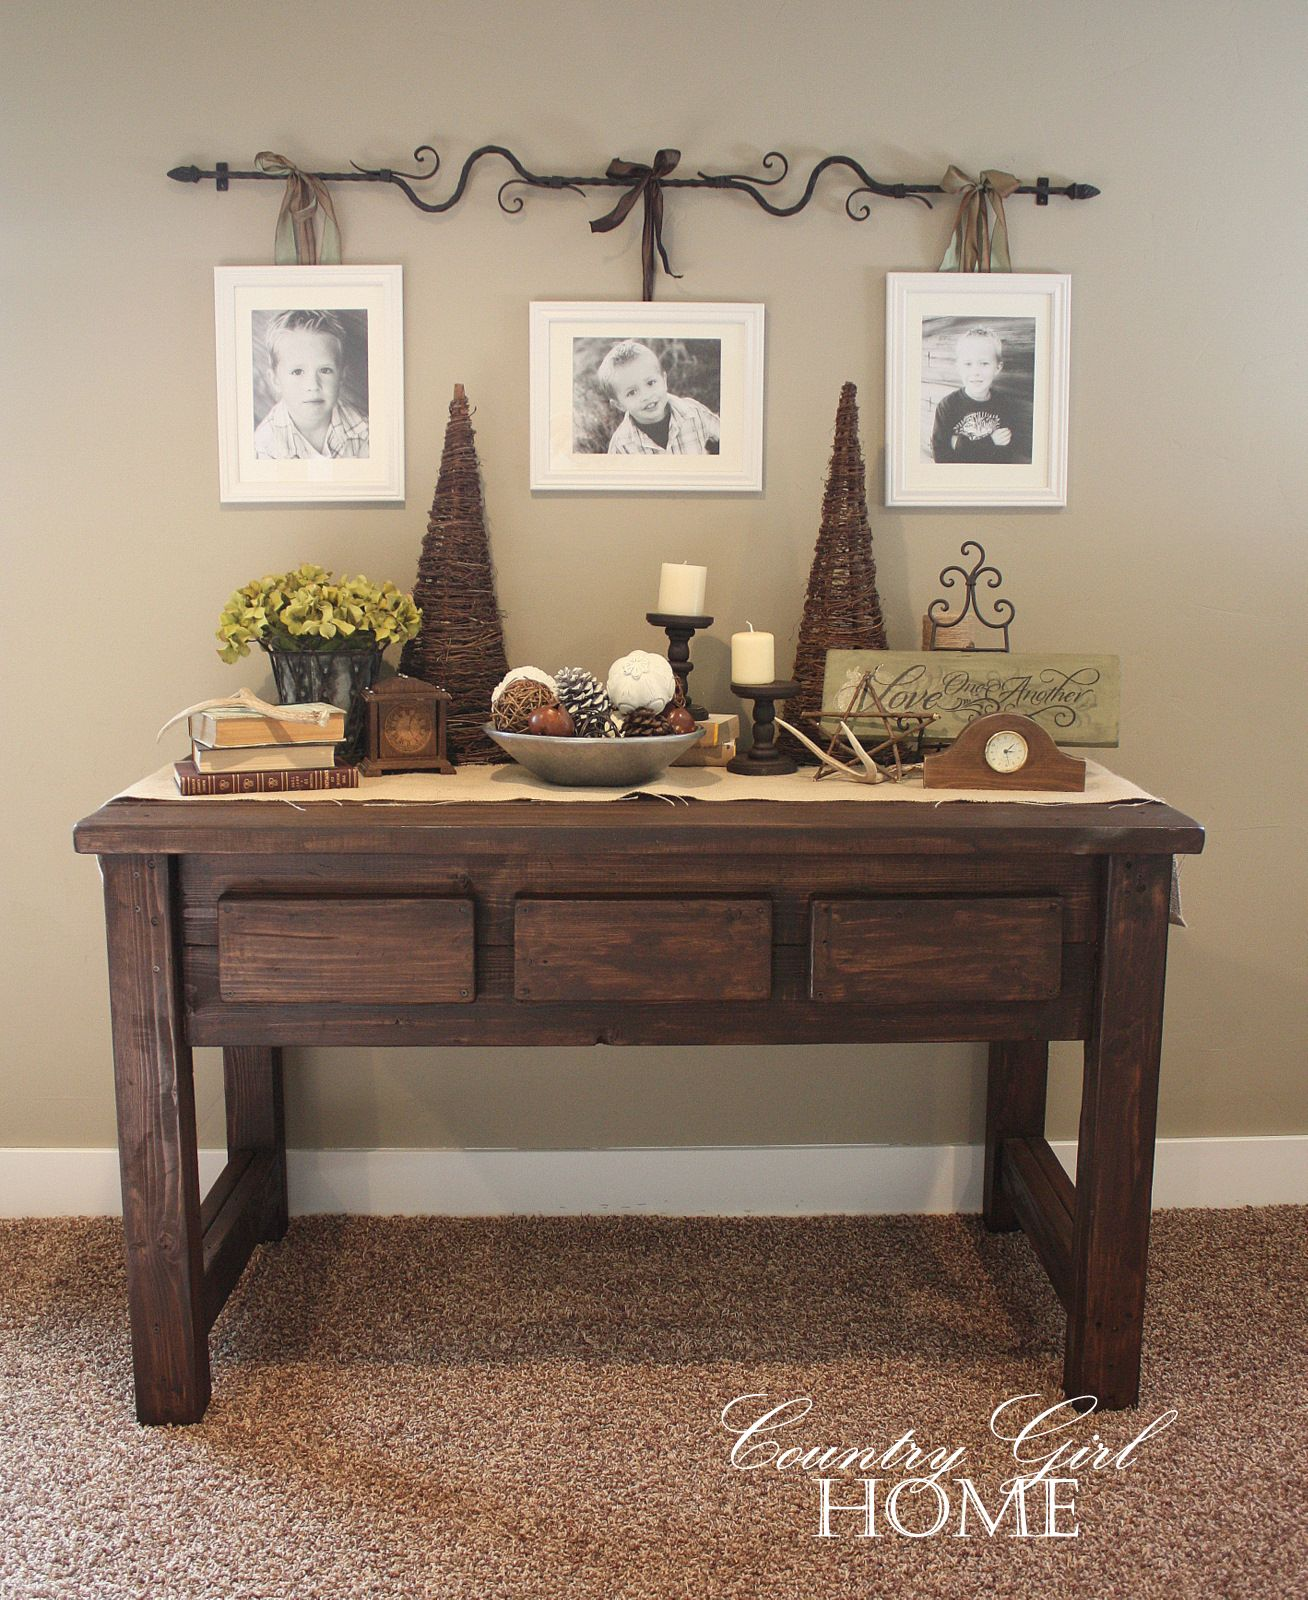 Living Room Decorating A Sofa Table 1000 images about sofa tables on pinterest ideas for decorating and modern french country